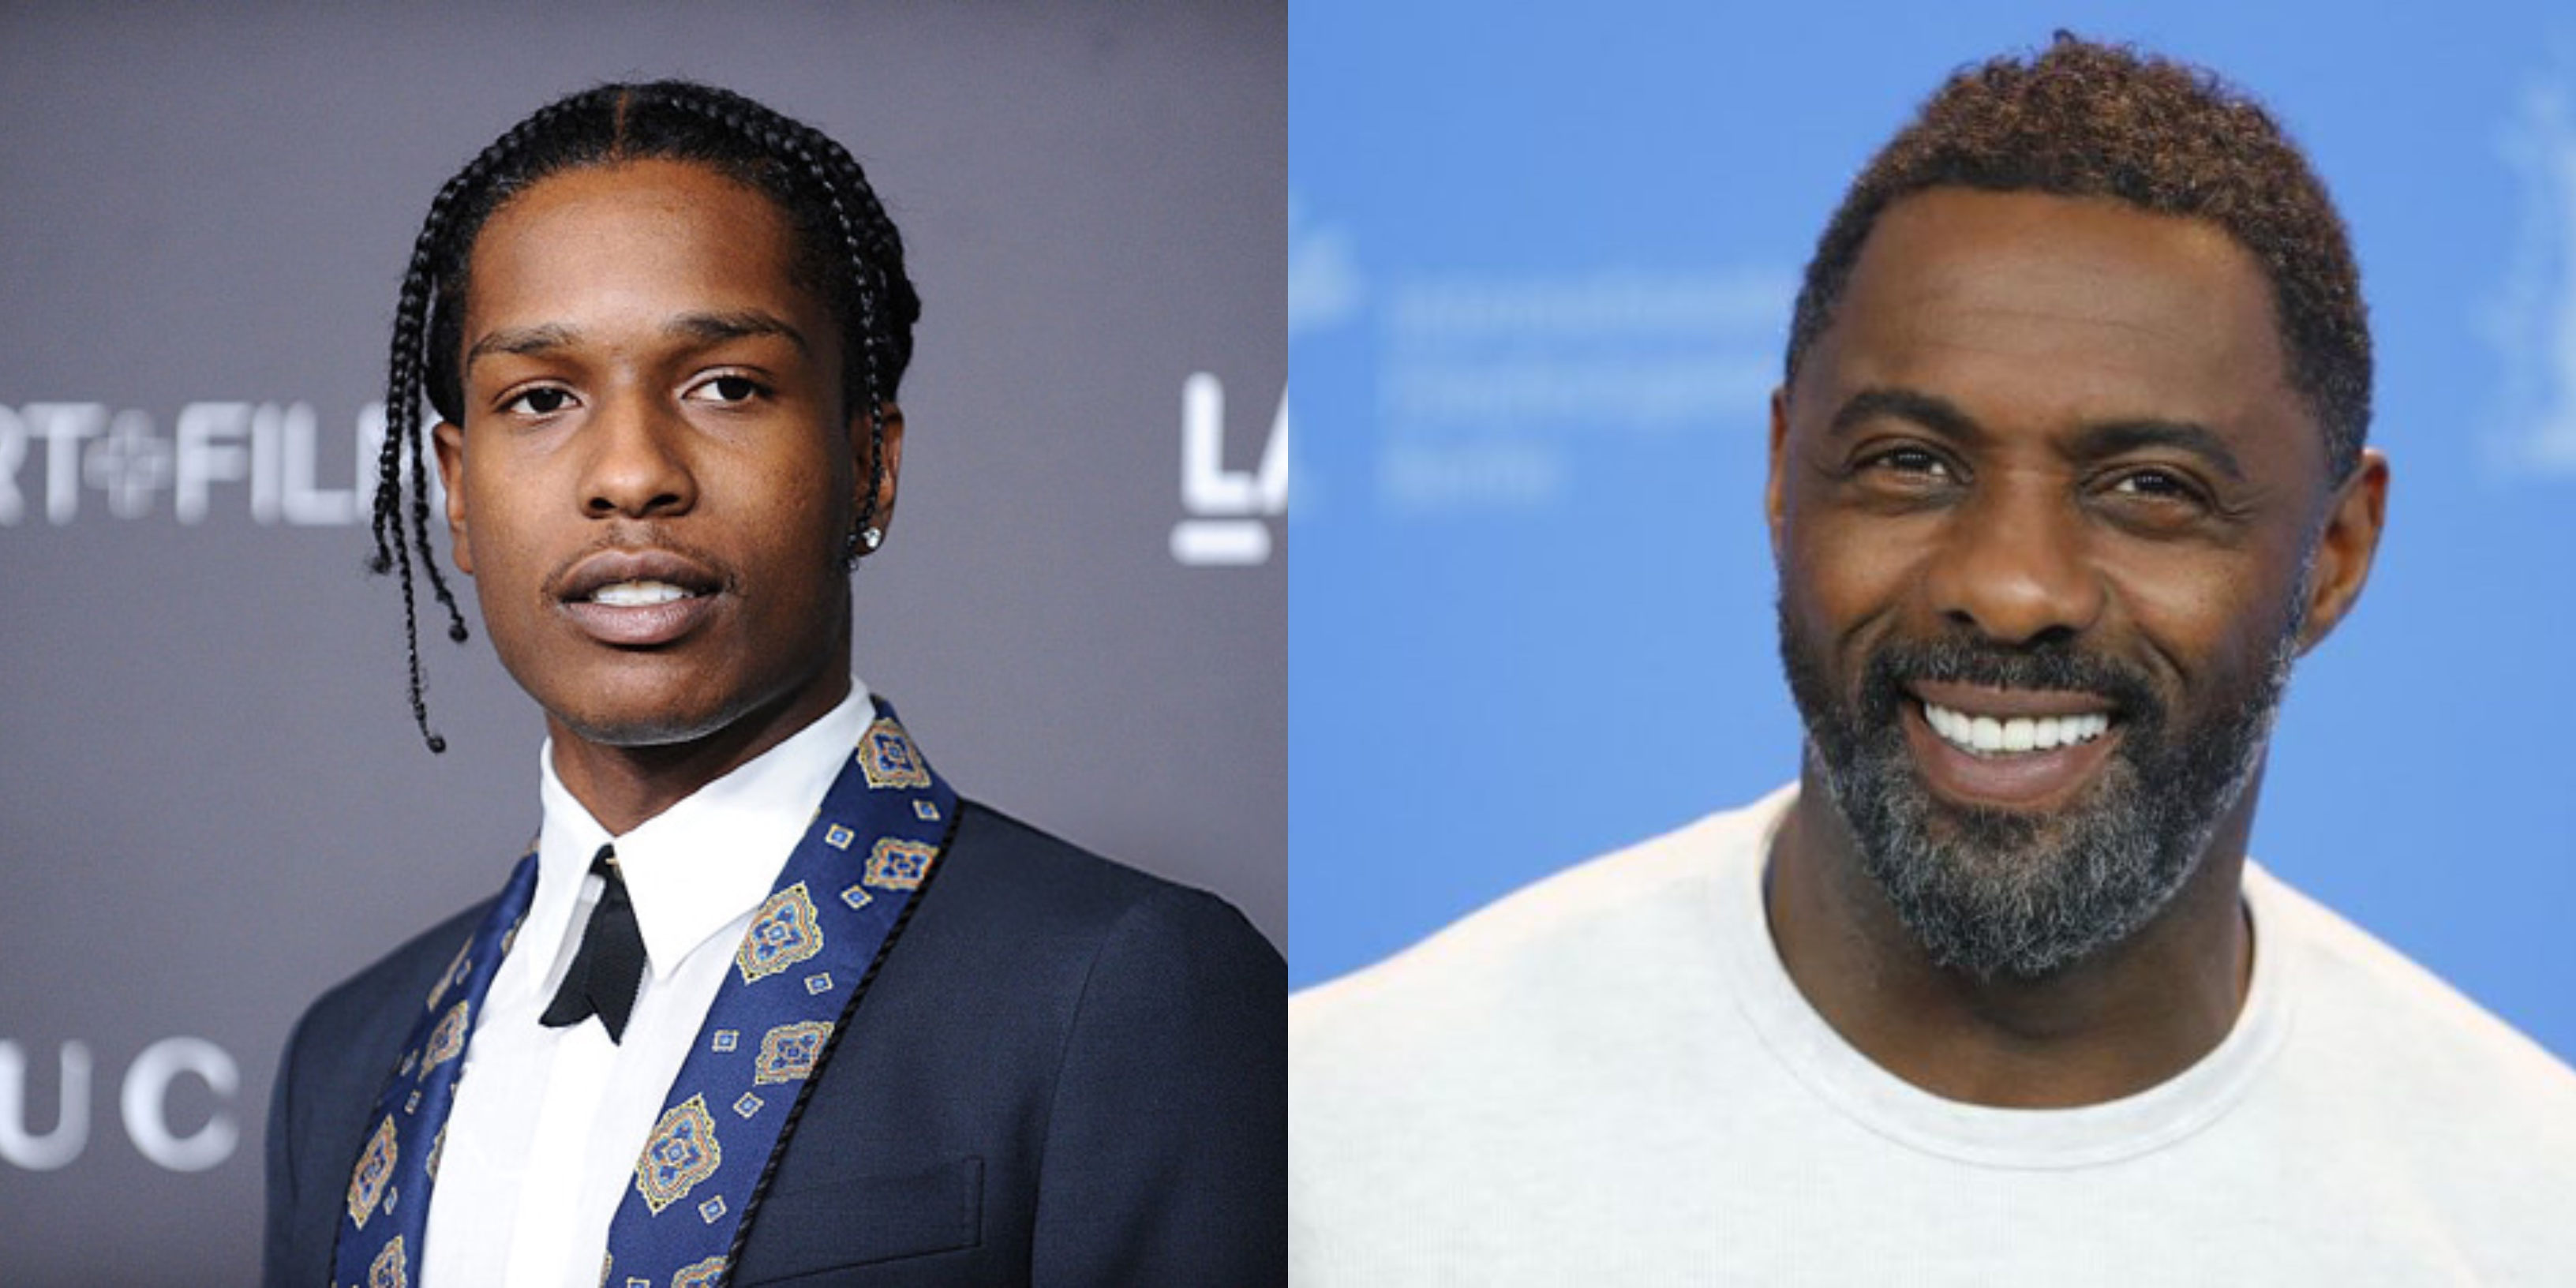 Idris Elba Wants to Work With A$AP Rocky